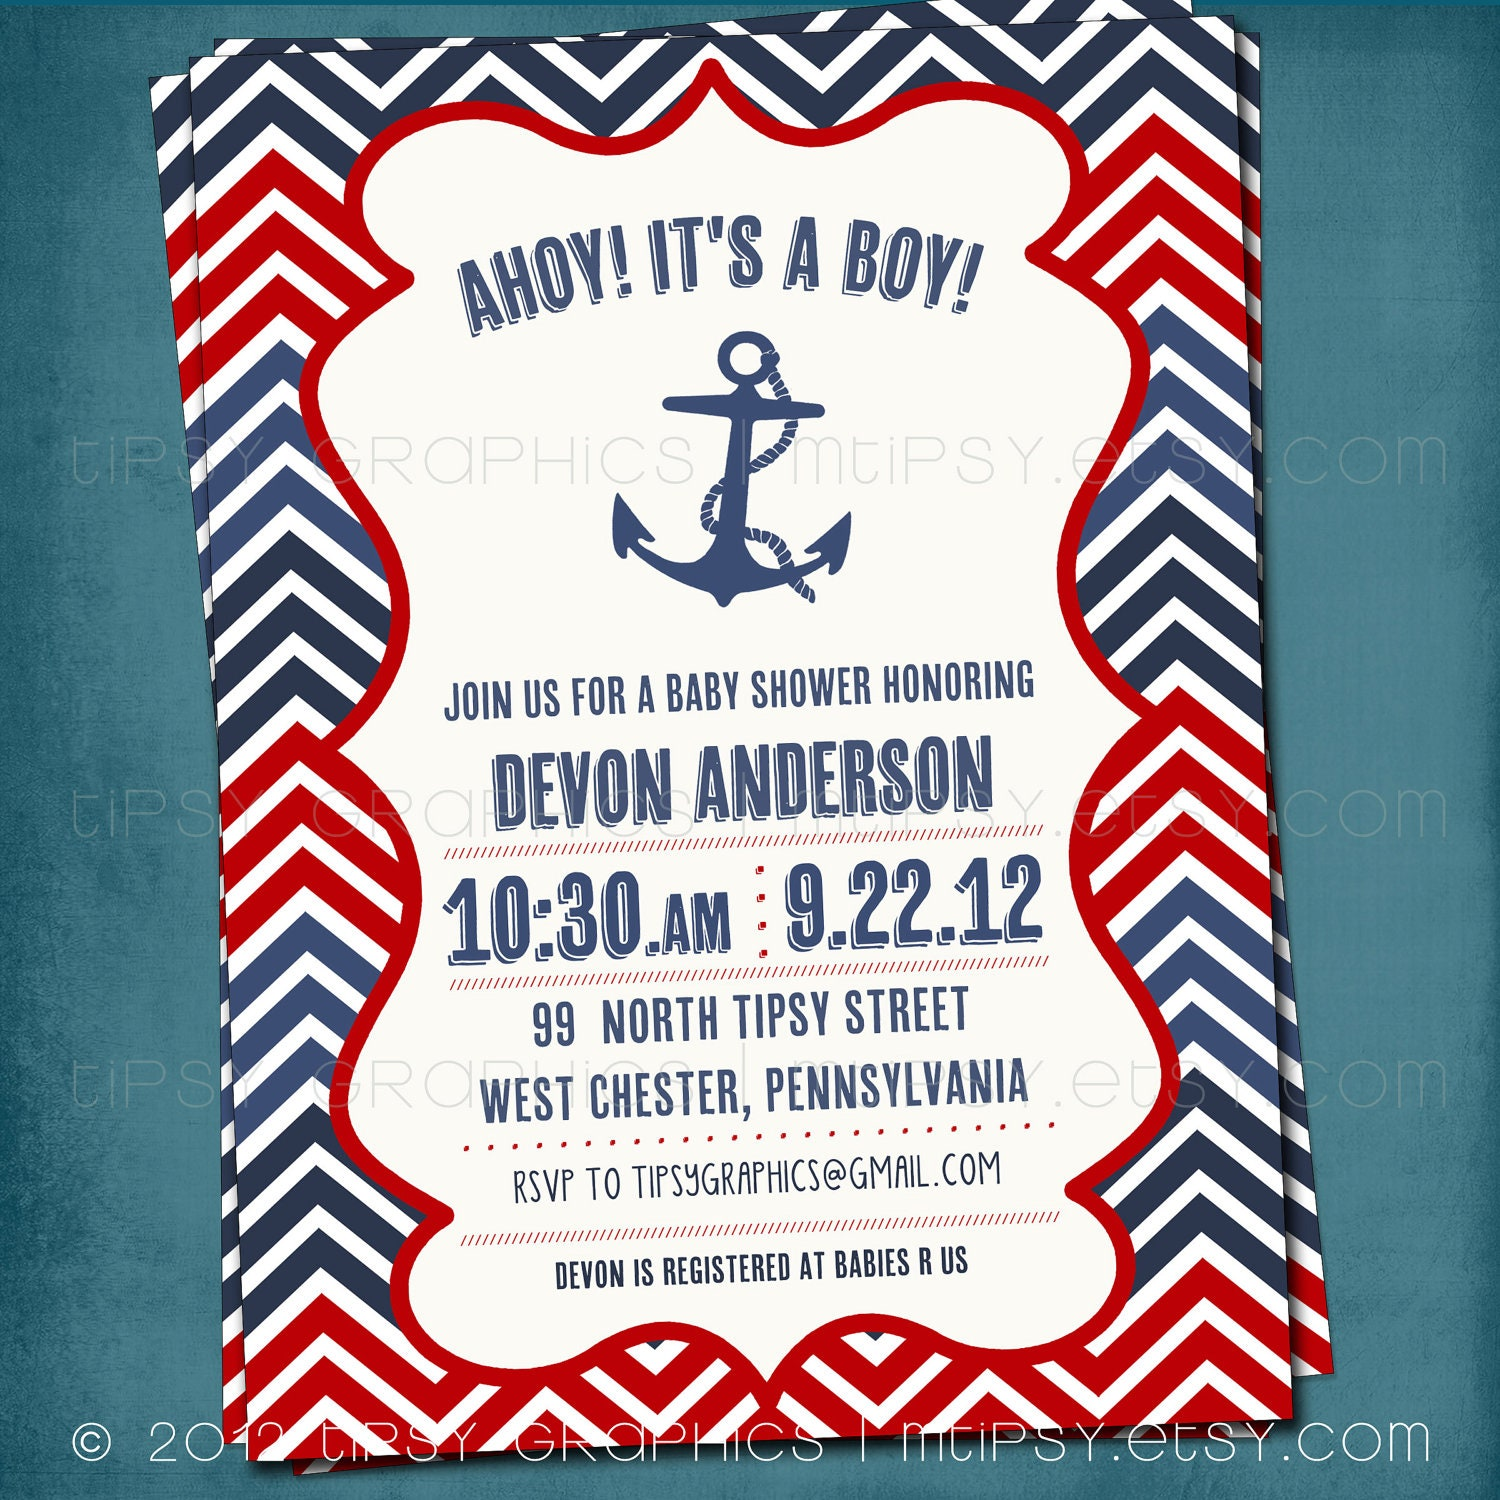 Chevron Nautical Baby Shower or Birthday Invite by Tipsy